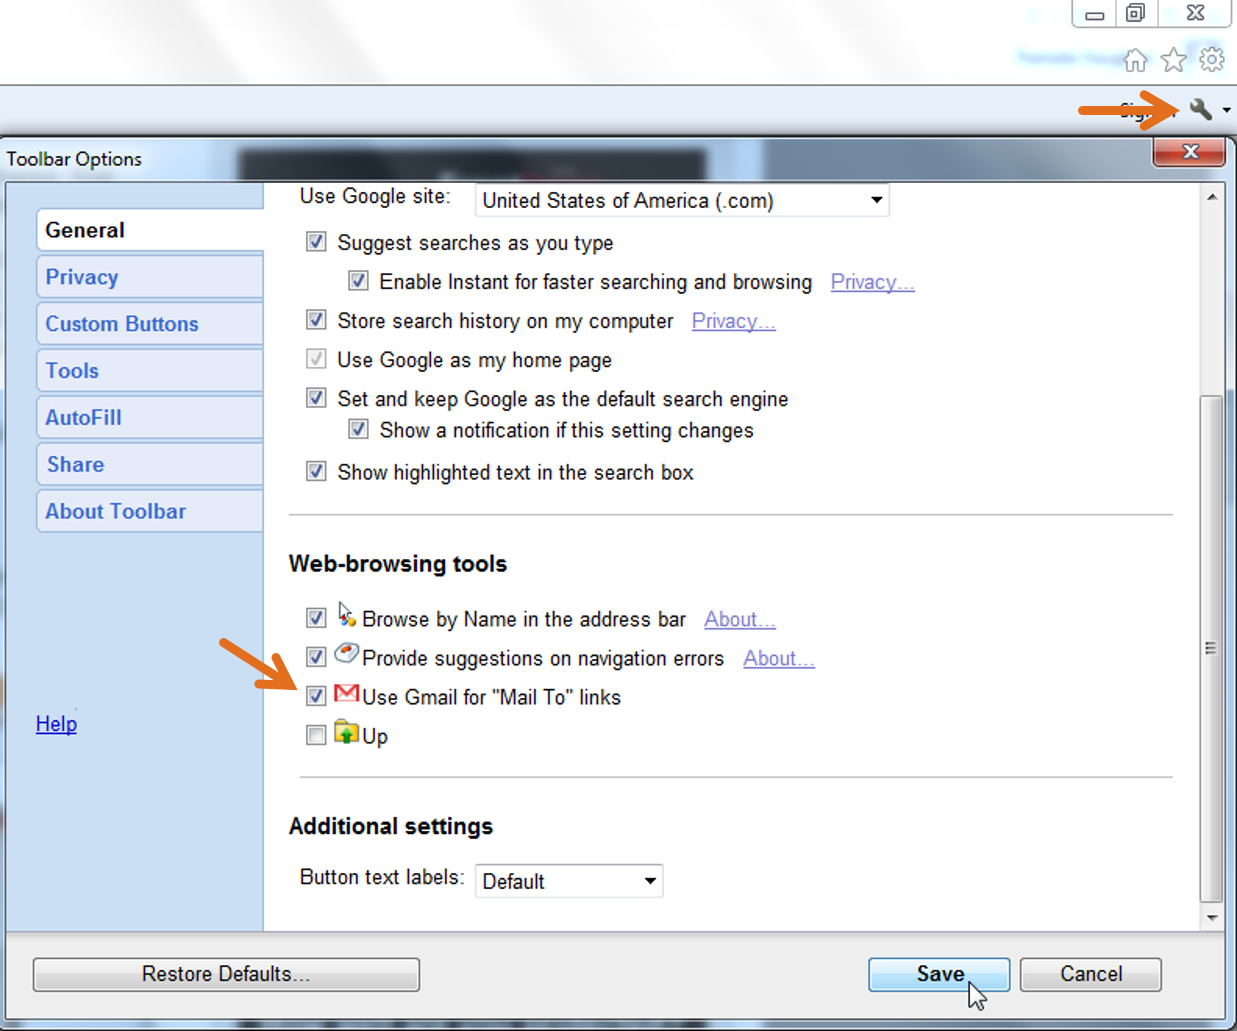 Toolbar options screen to make Gmail default email client for Mail To links in Internet Explorer